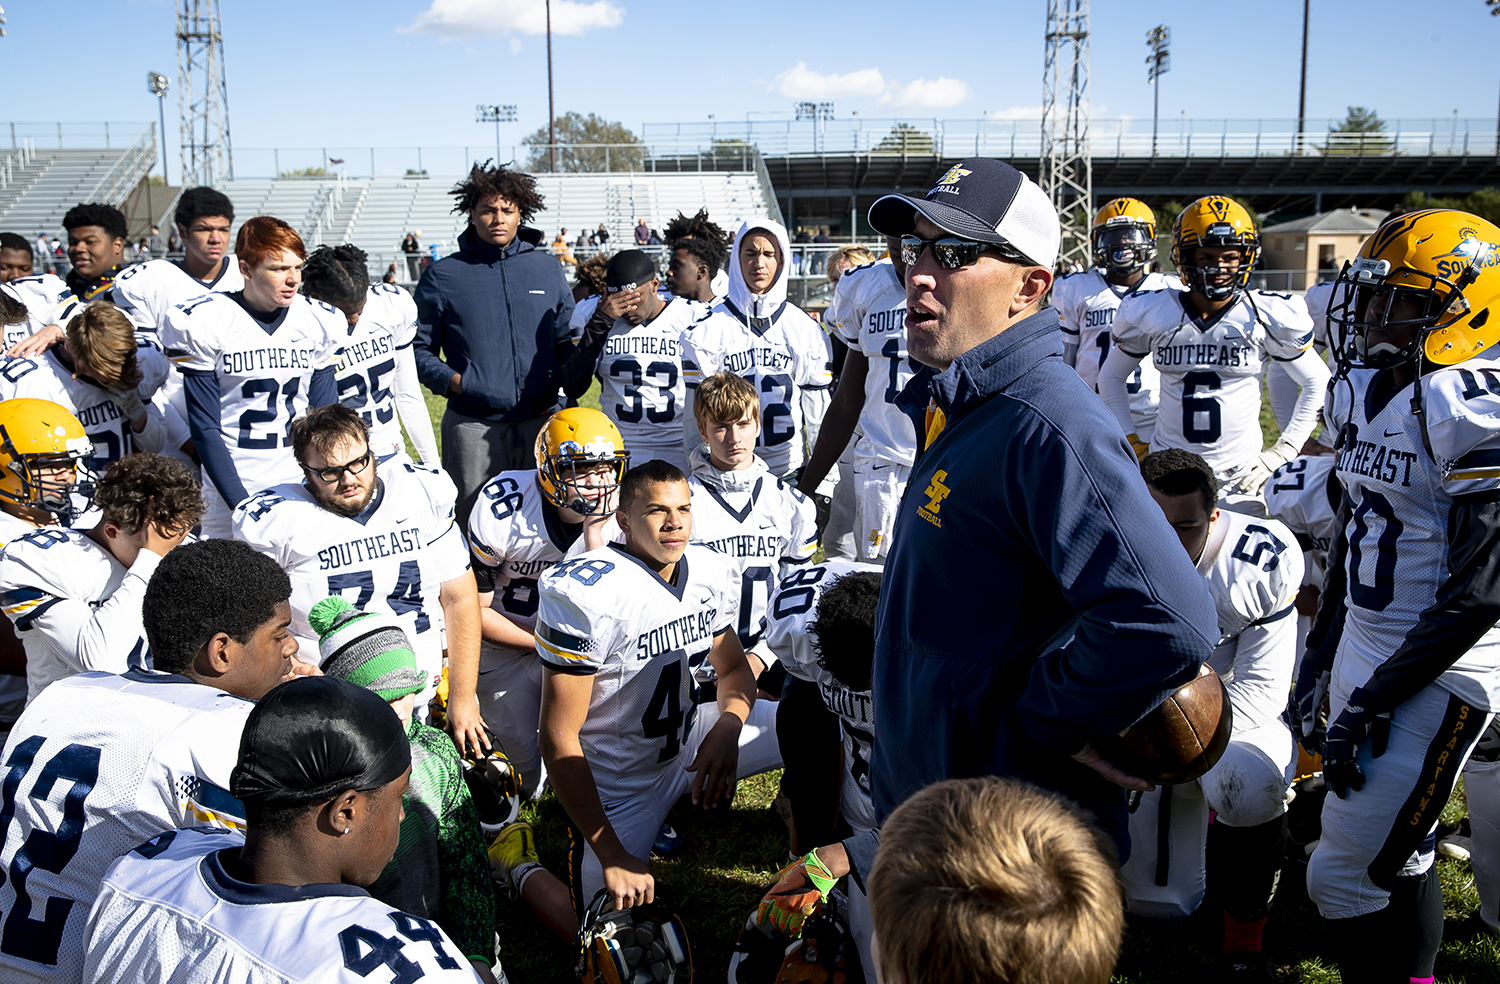 Southeast head coach Matt Lauber thanks his team for their work during the season at Memorial Stadium after the Spartans defeated Lanphier 44-12 to finish 4-5 for the season Saturday, Oct. 20, 2018 in Springfield, Ill. [Rich Saal/The State Journal-Register]